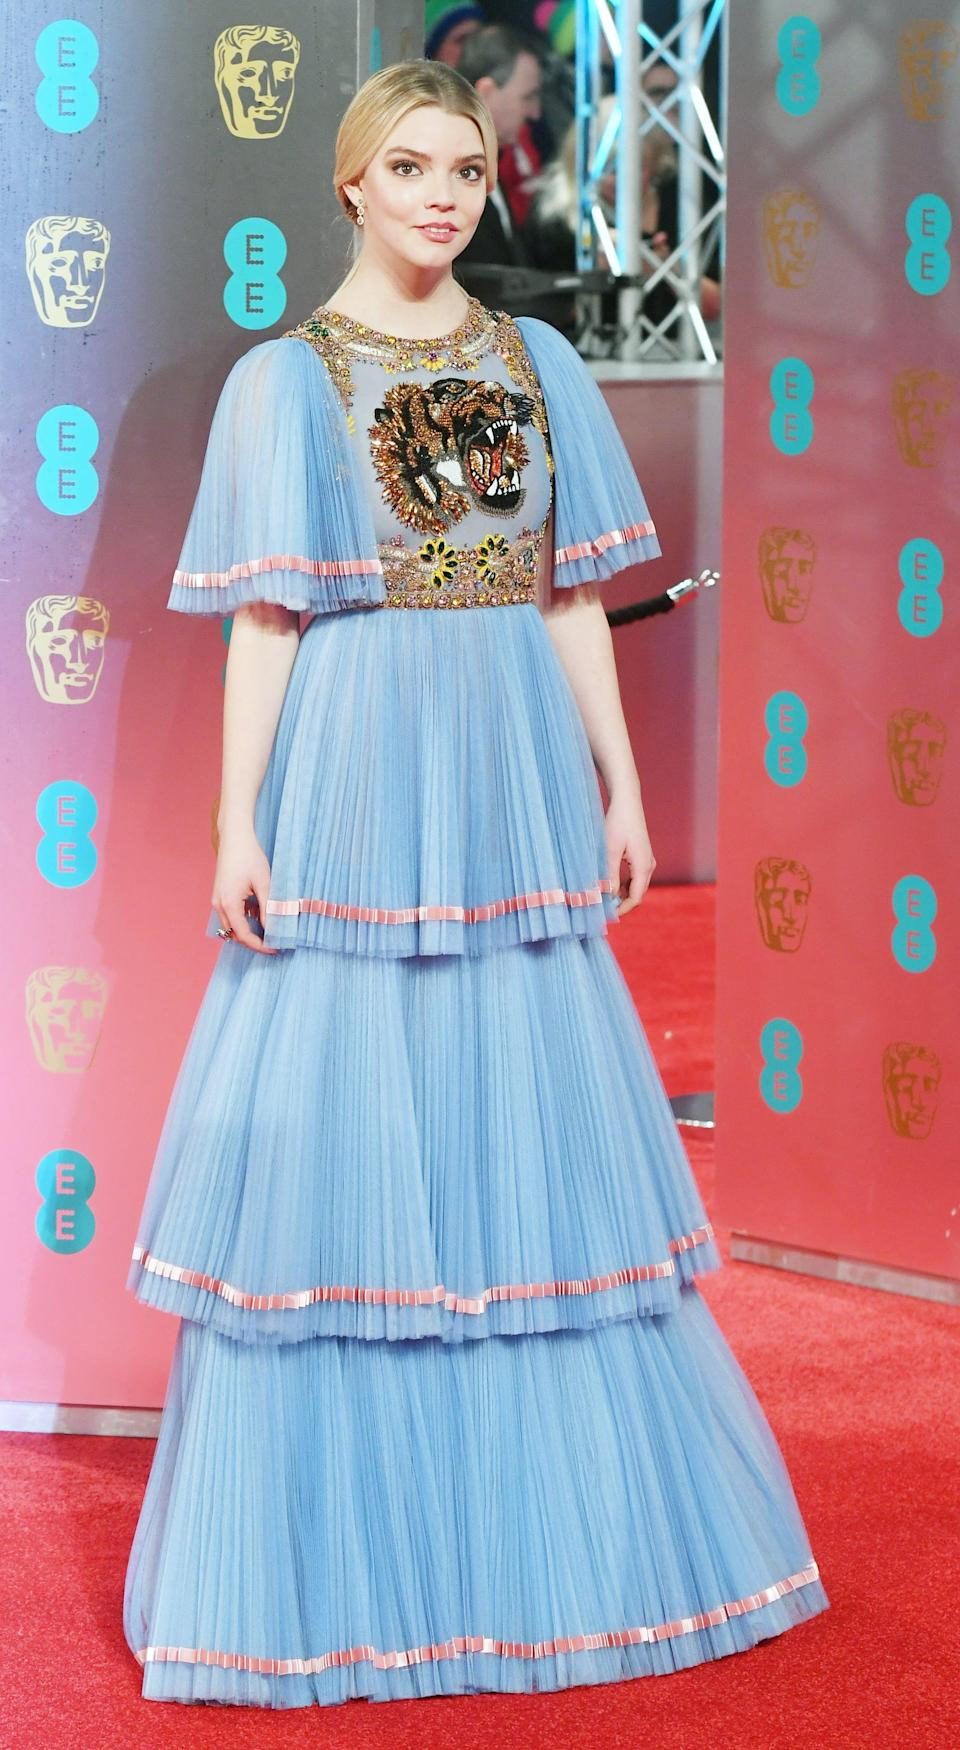 <p>Anya wore a tiered, tulle Gucci gown in light blue with tiger applique detail.</p>